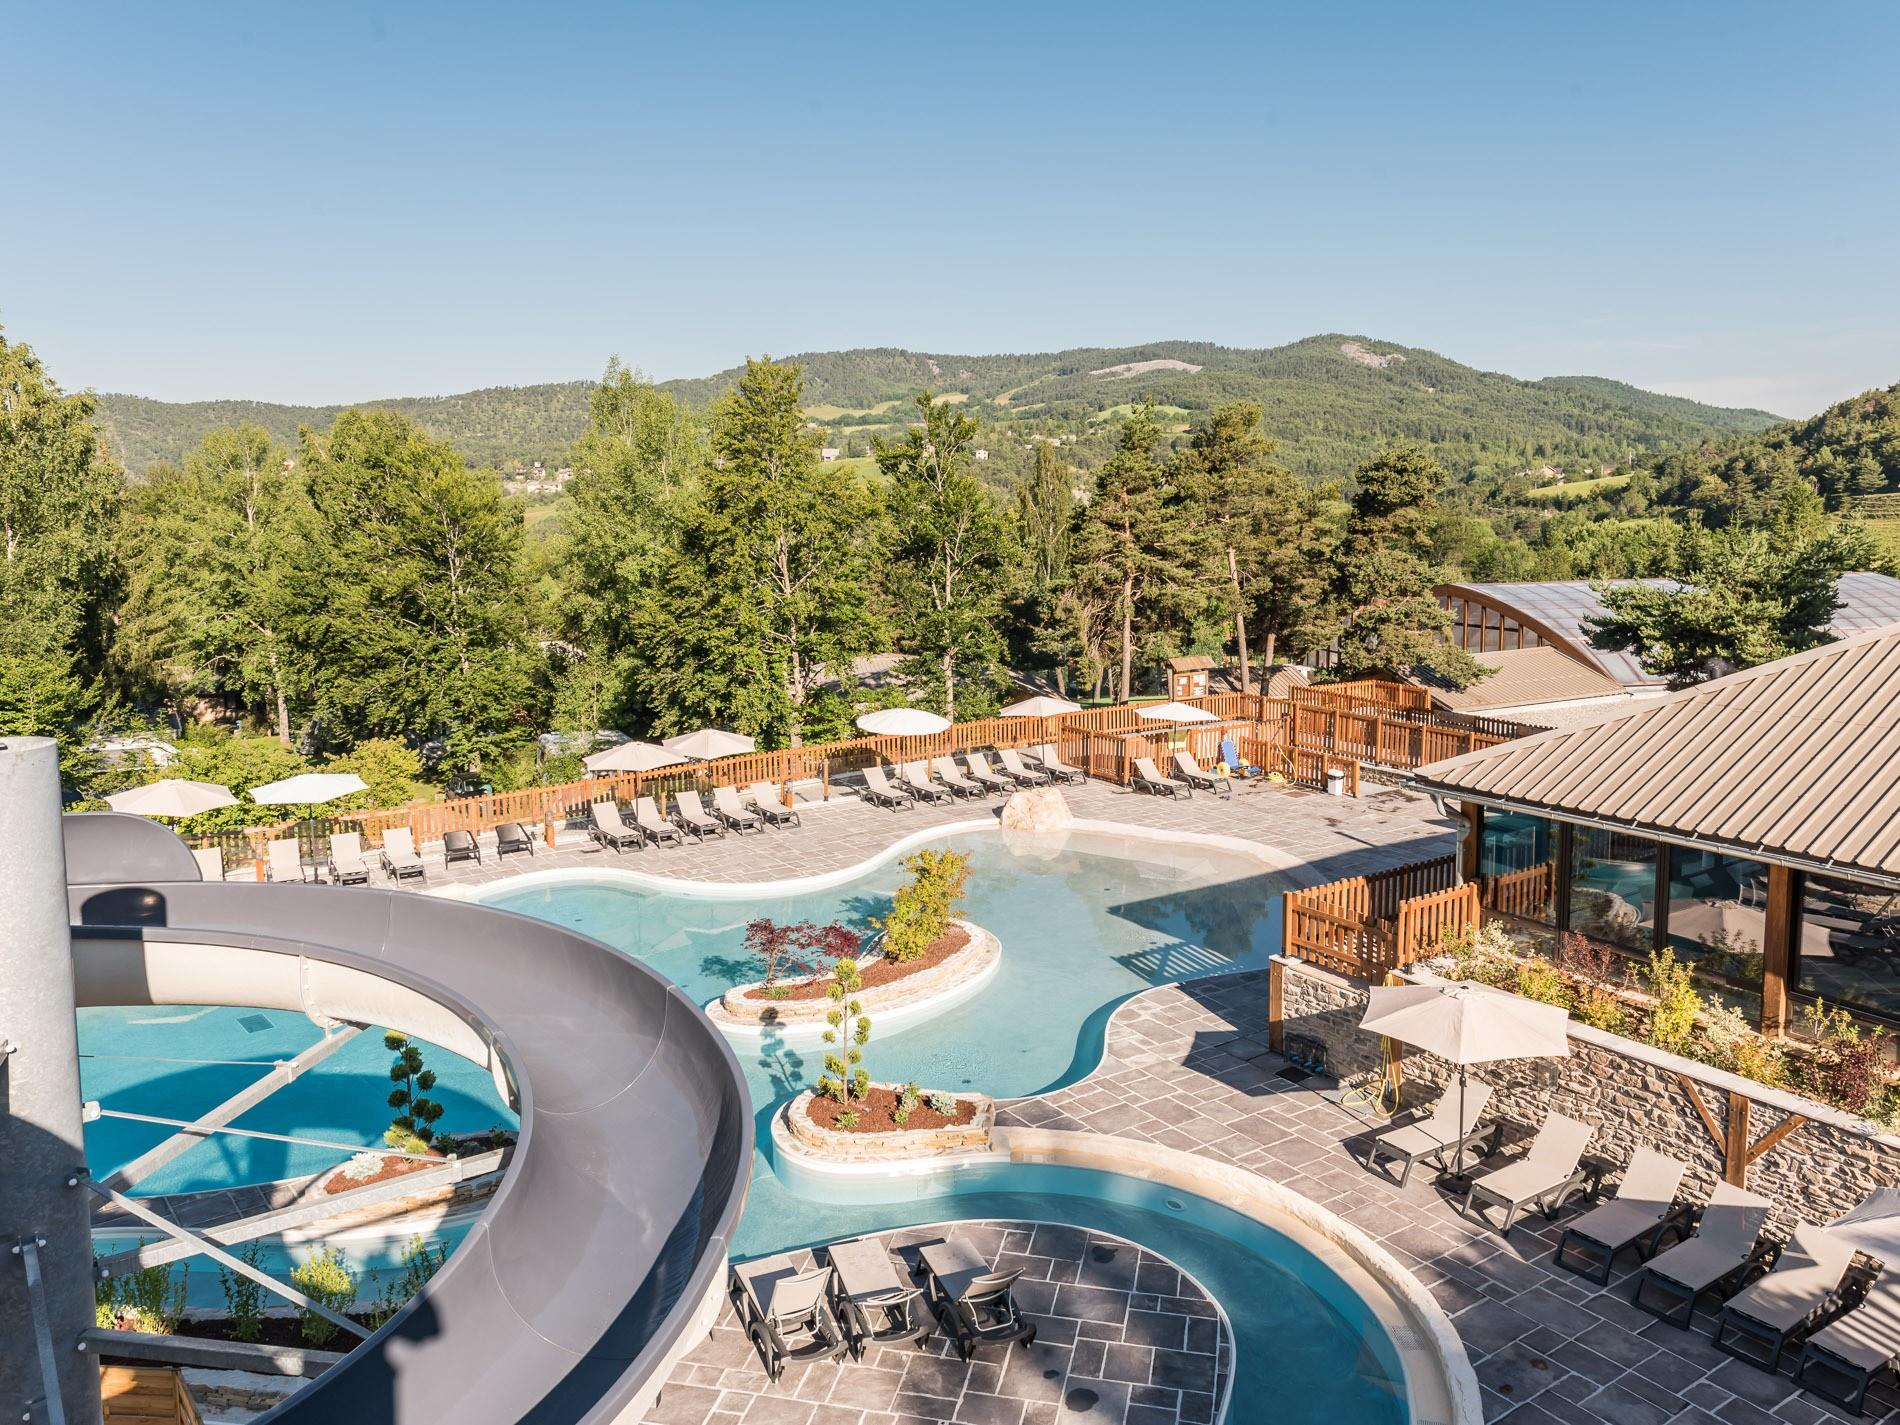 Mare, piscina Yelloh! Village - Etoile Des Neiges - Montclar